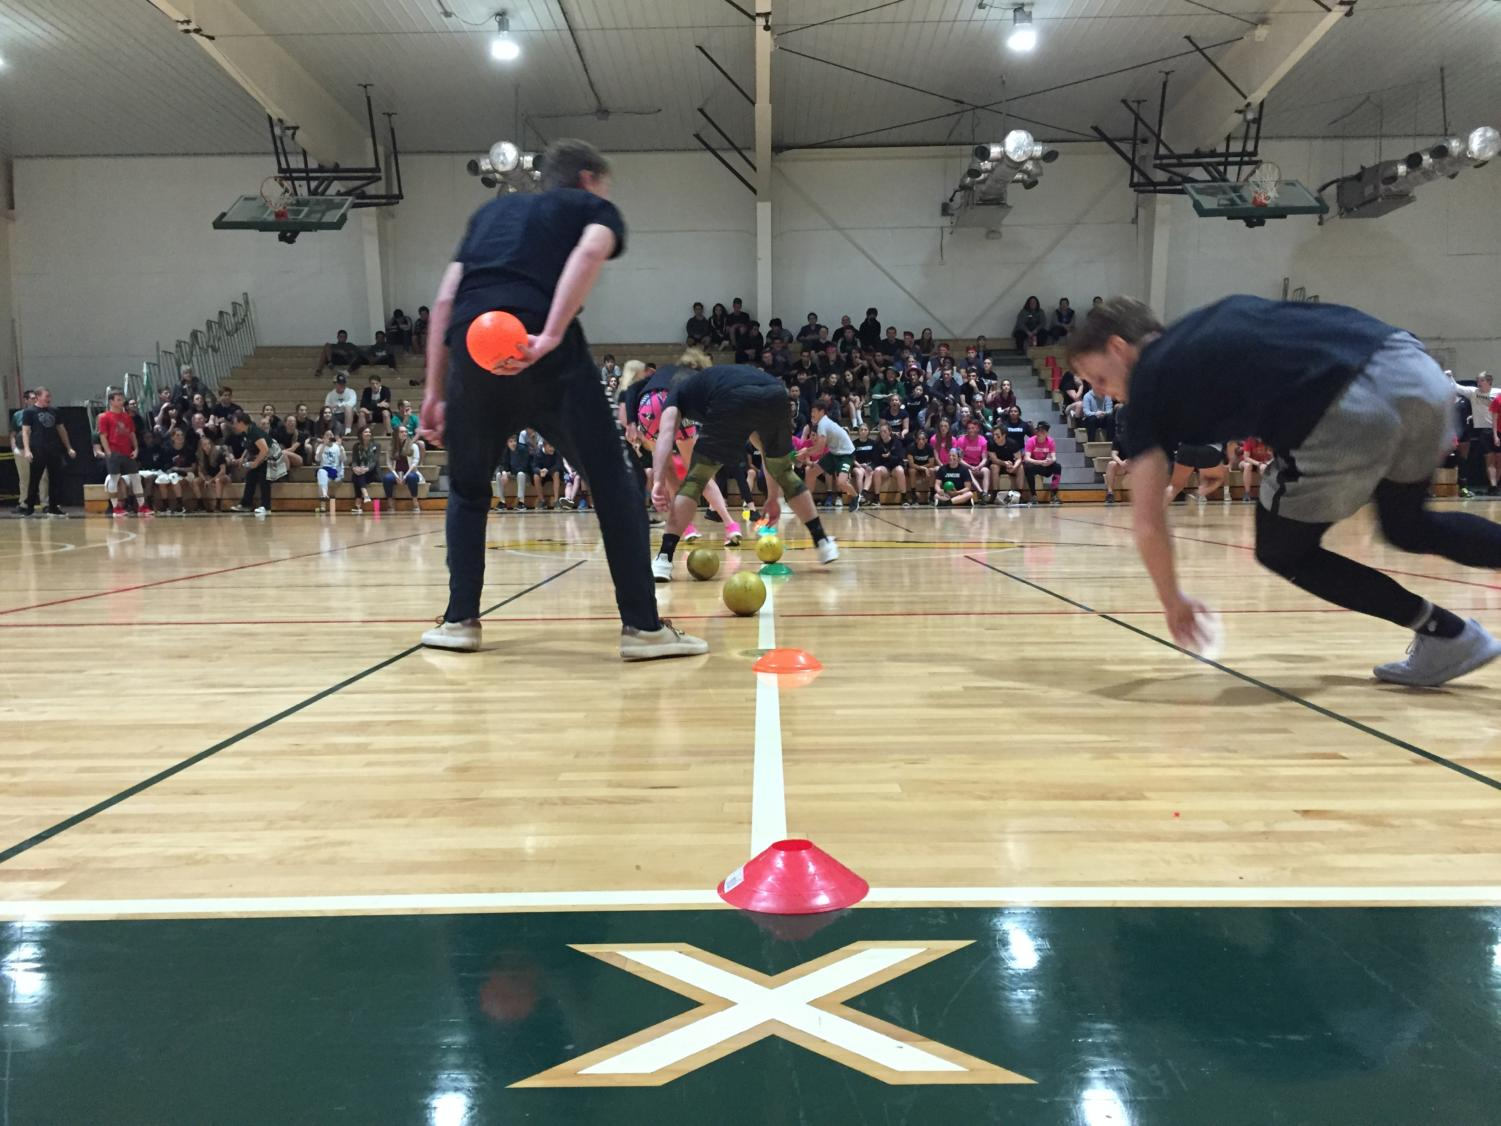 Opponents+race+to+pick+up+the+dodgeballs+at+the+halfway+line.